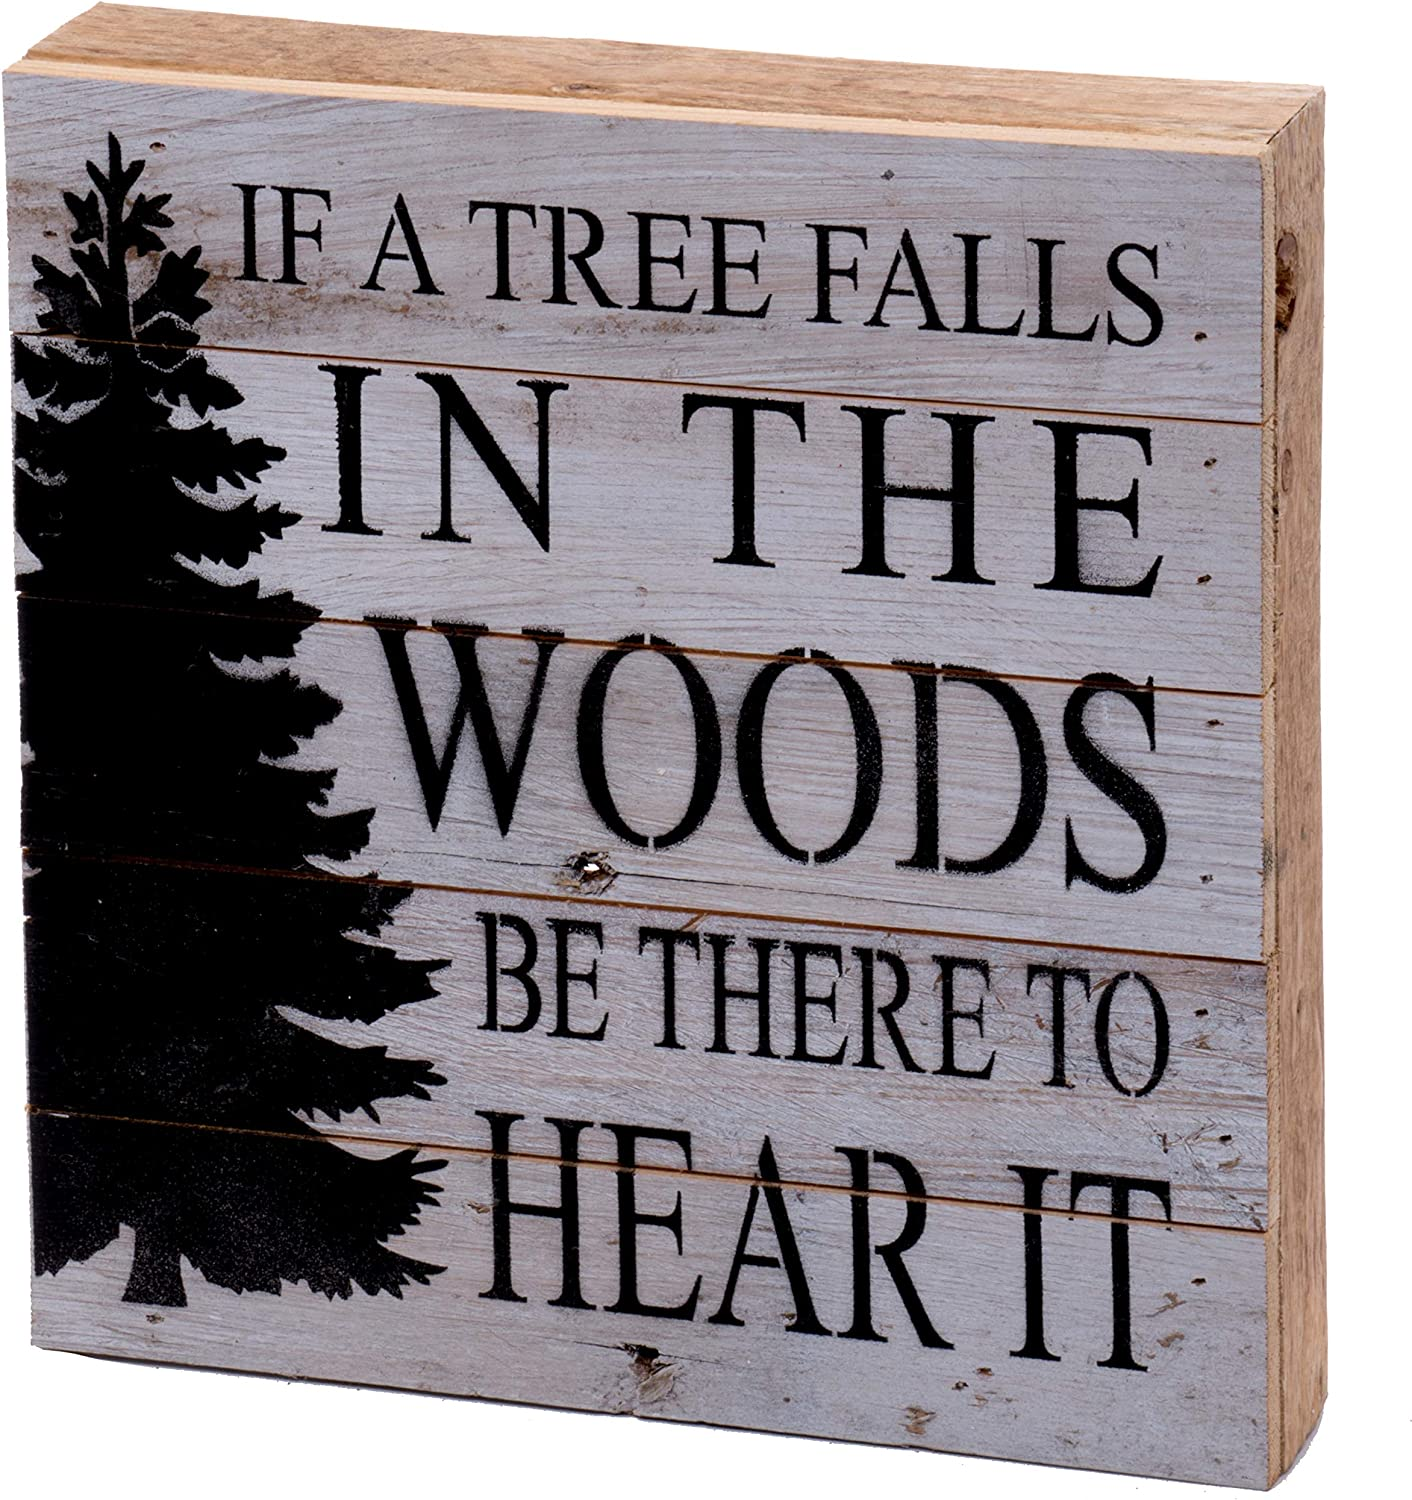 Second Nature By Hand 10x10 Inch Reclaimed Wood Art, Handcrafted Decorative Wall Plaque — IF A Tree Falls in The Woods BE There to Hear IT